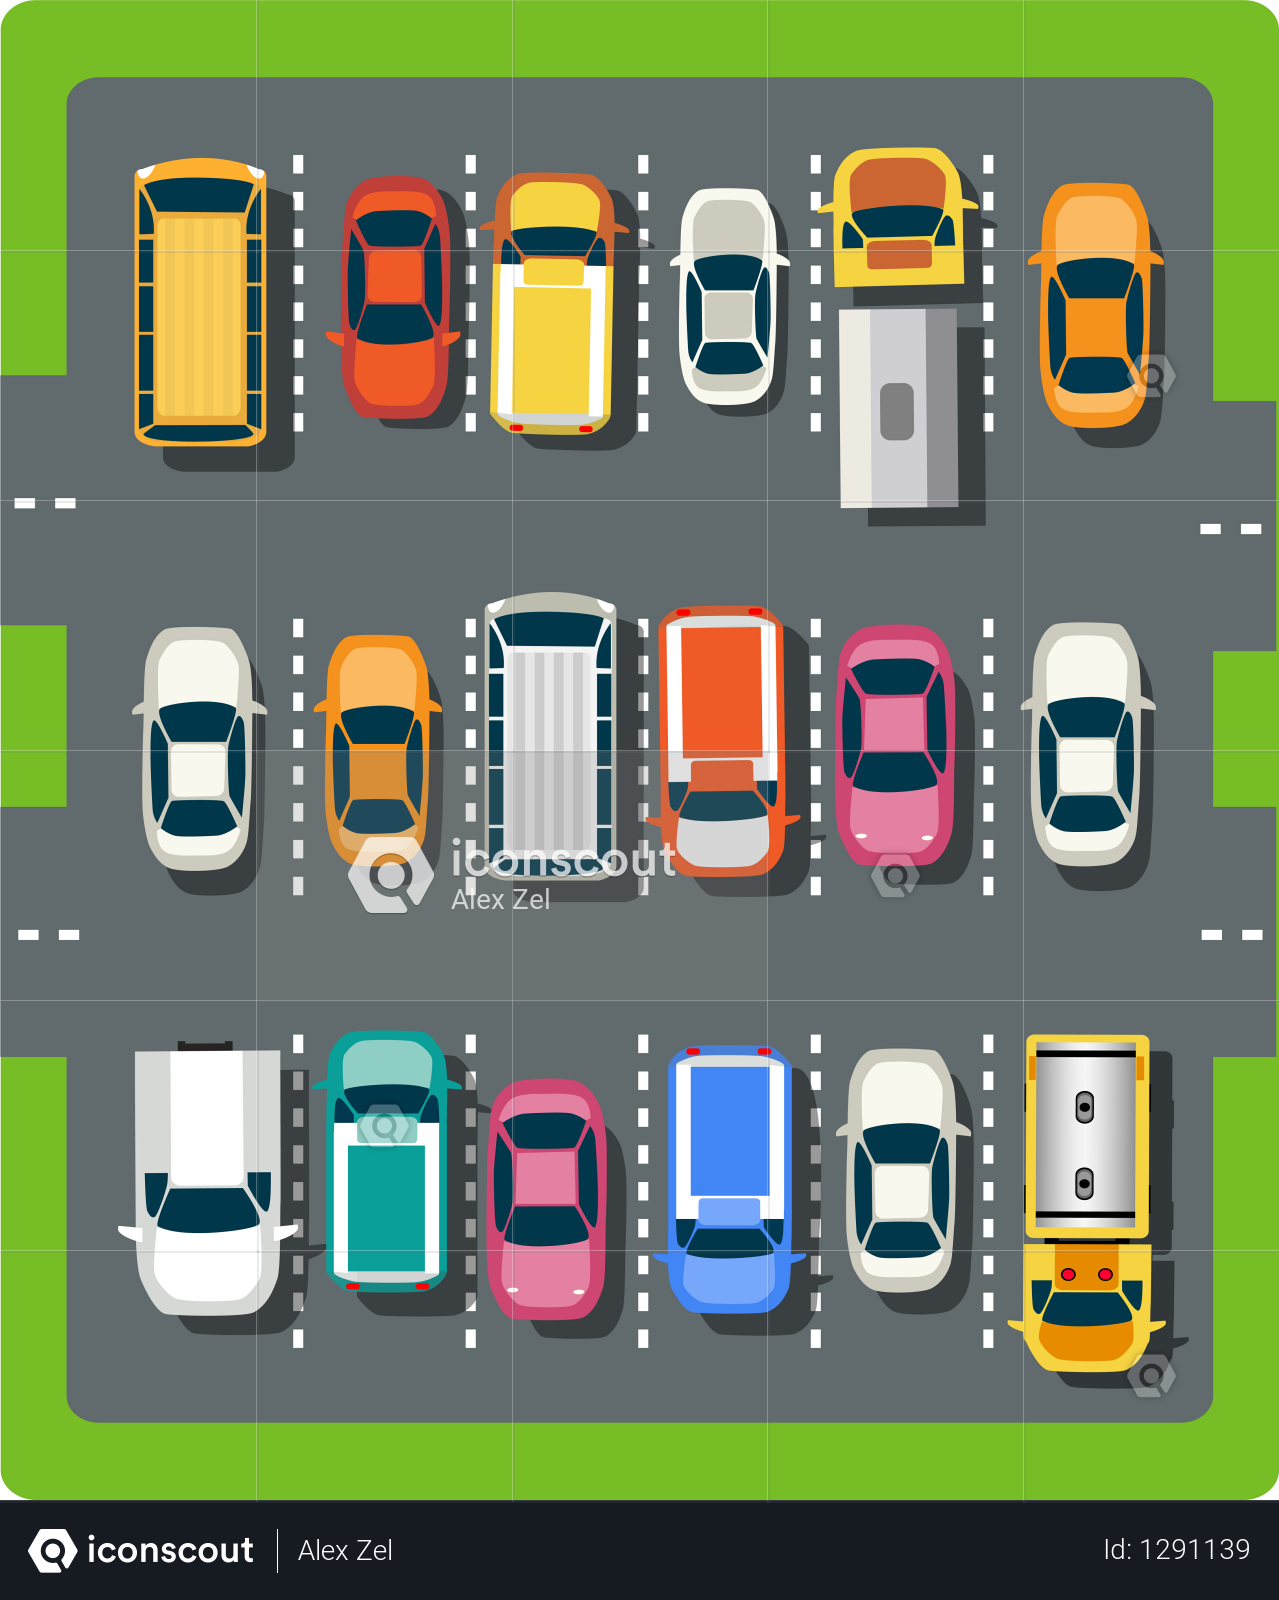 Premium Top View Of The City Parking Illustration Download In Png Vector Format Illustration Cartoon Tops House Illustration